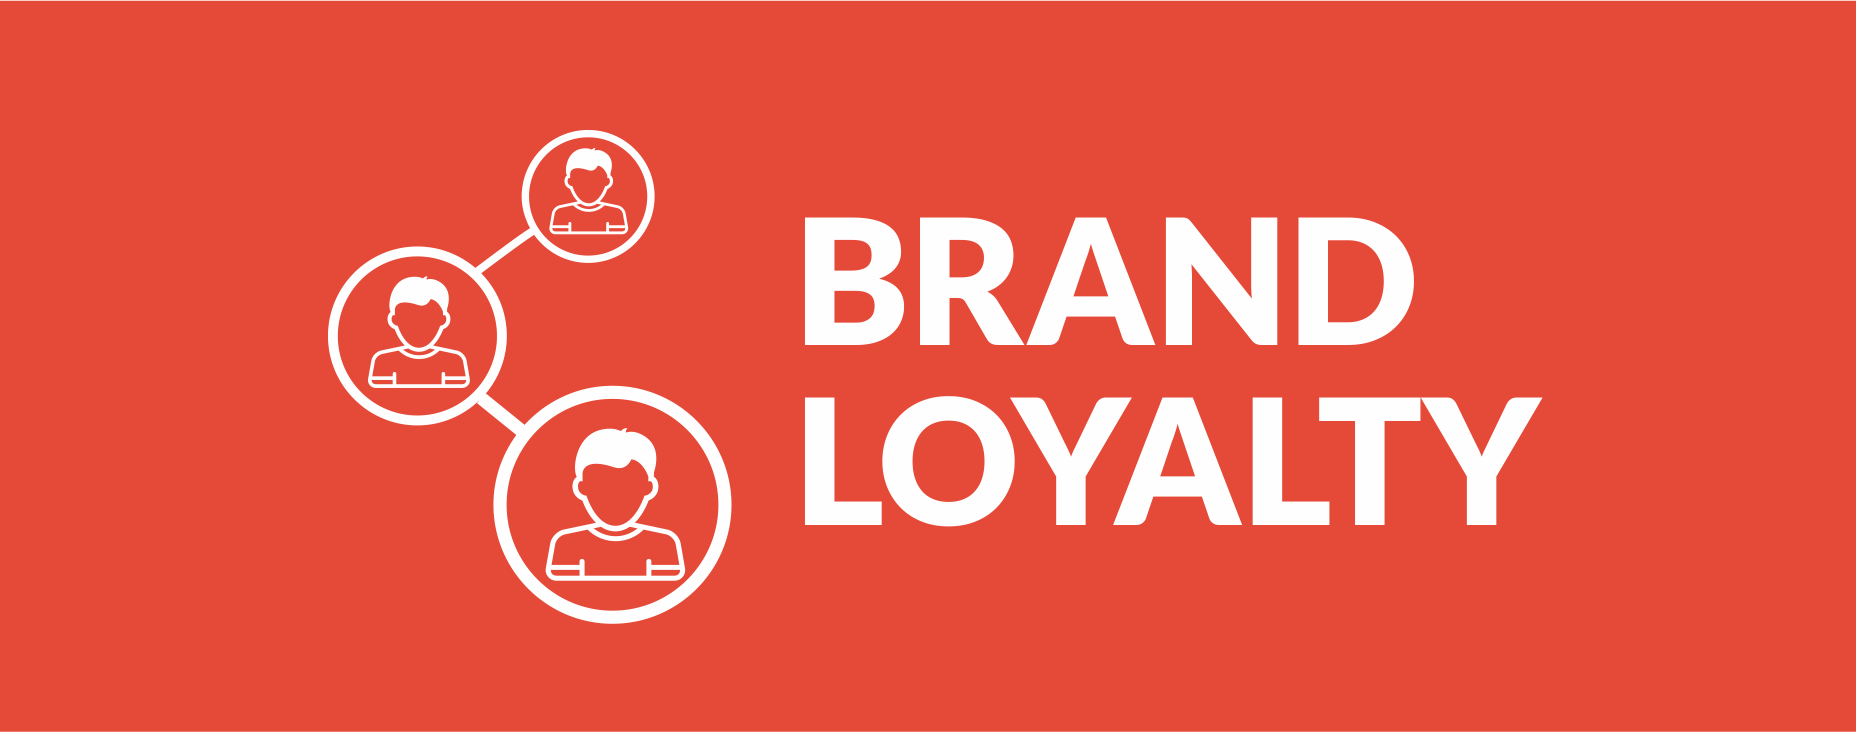 the importance of brand equity to customer loyalty Importance of brand awareness and brand loyalty in assessing purchase intentions of consumer brand loyalty is very important for the organization to.